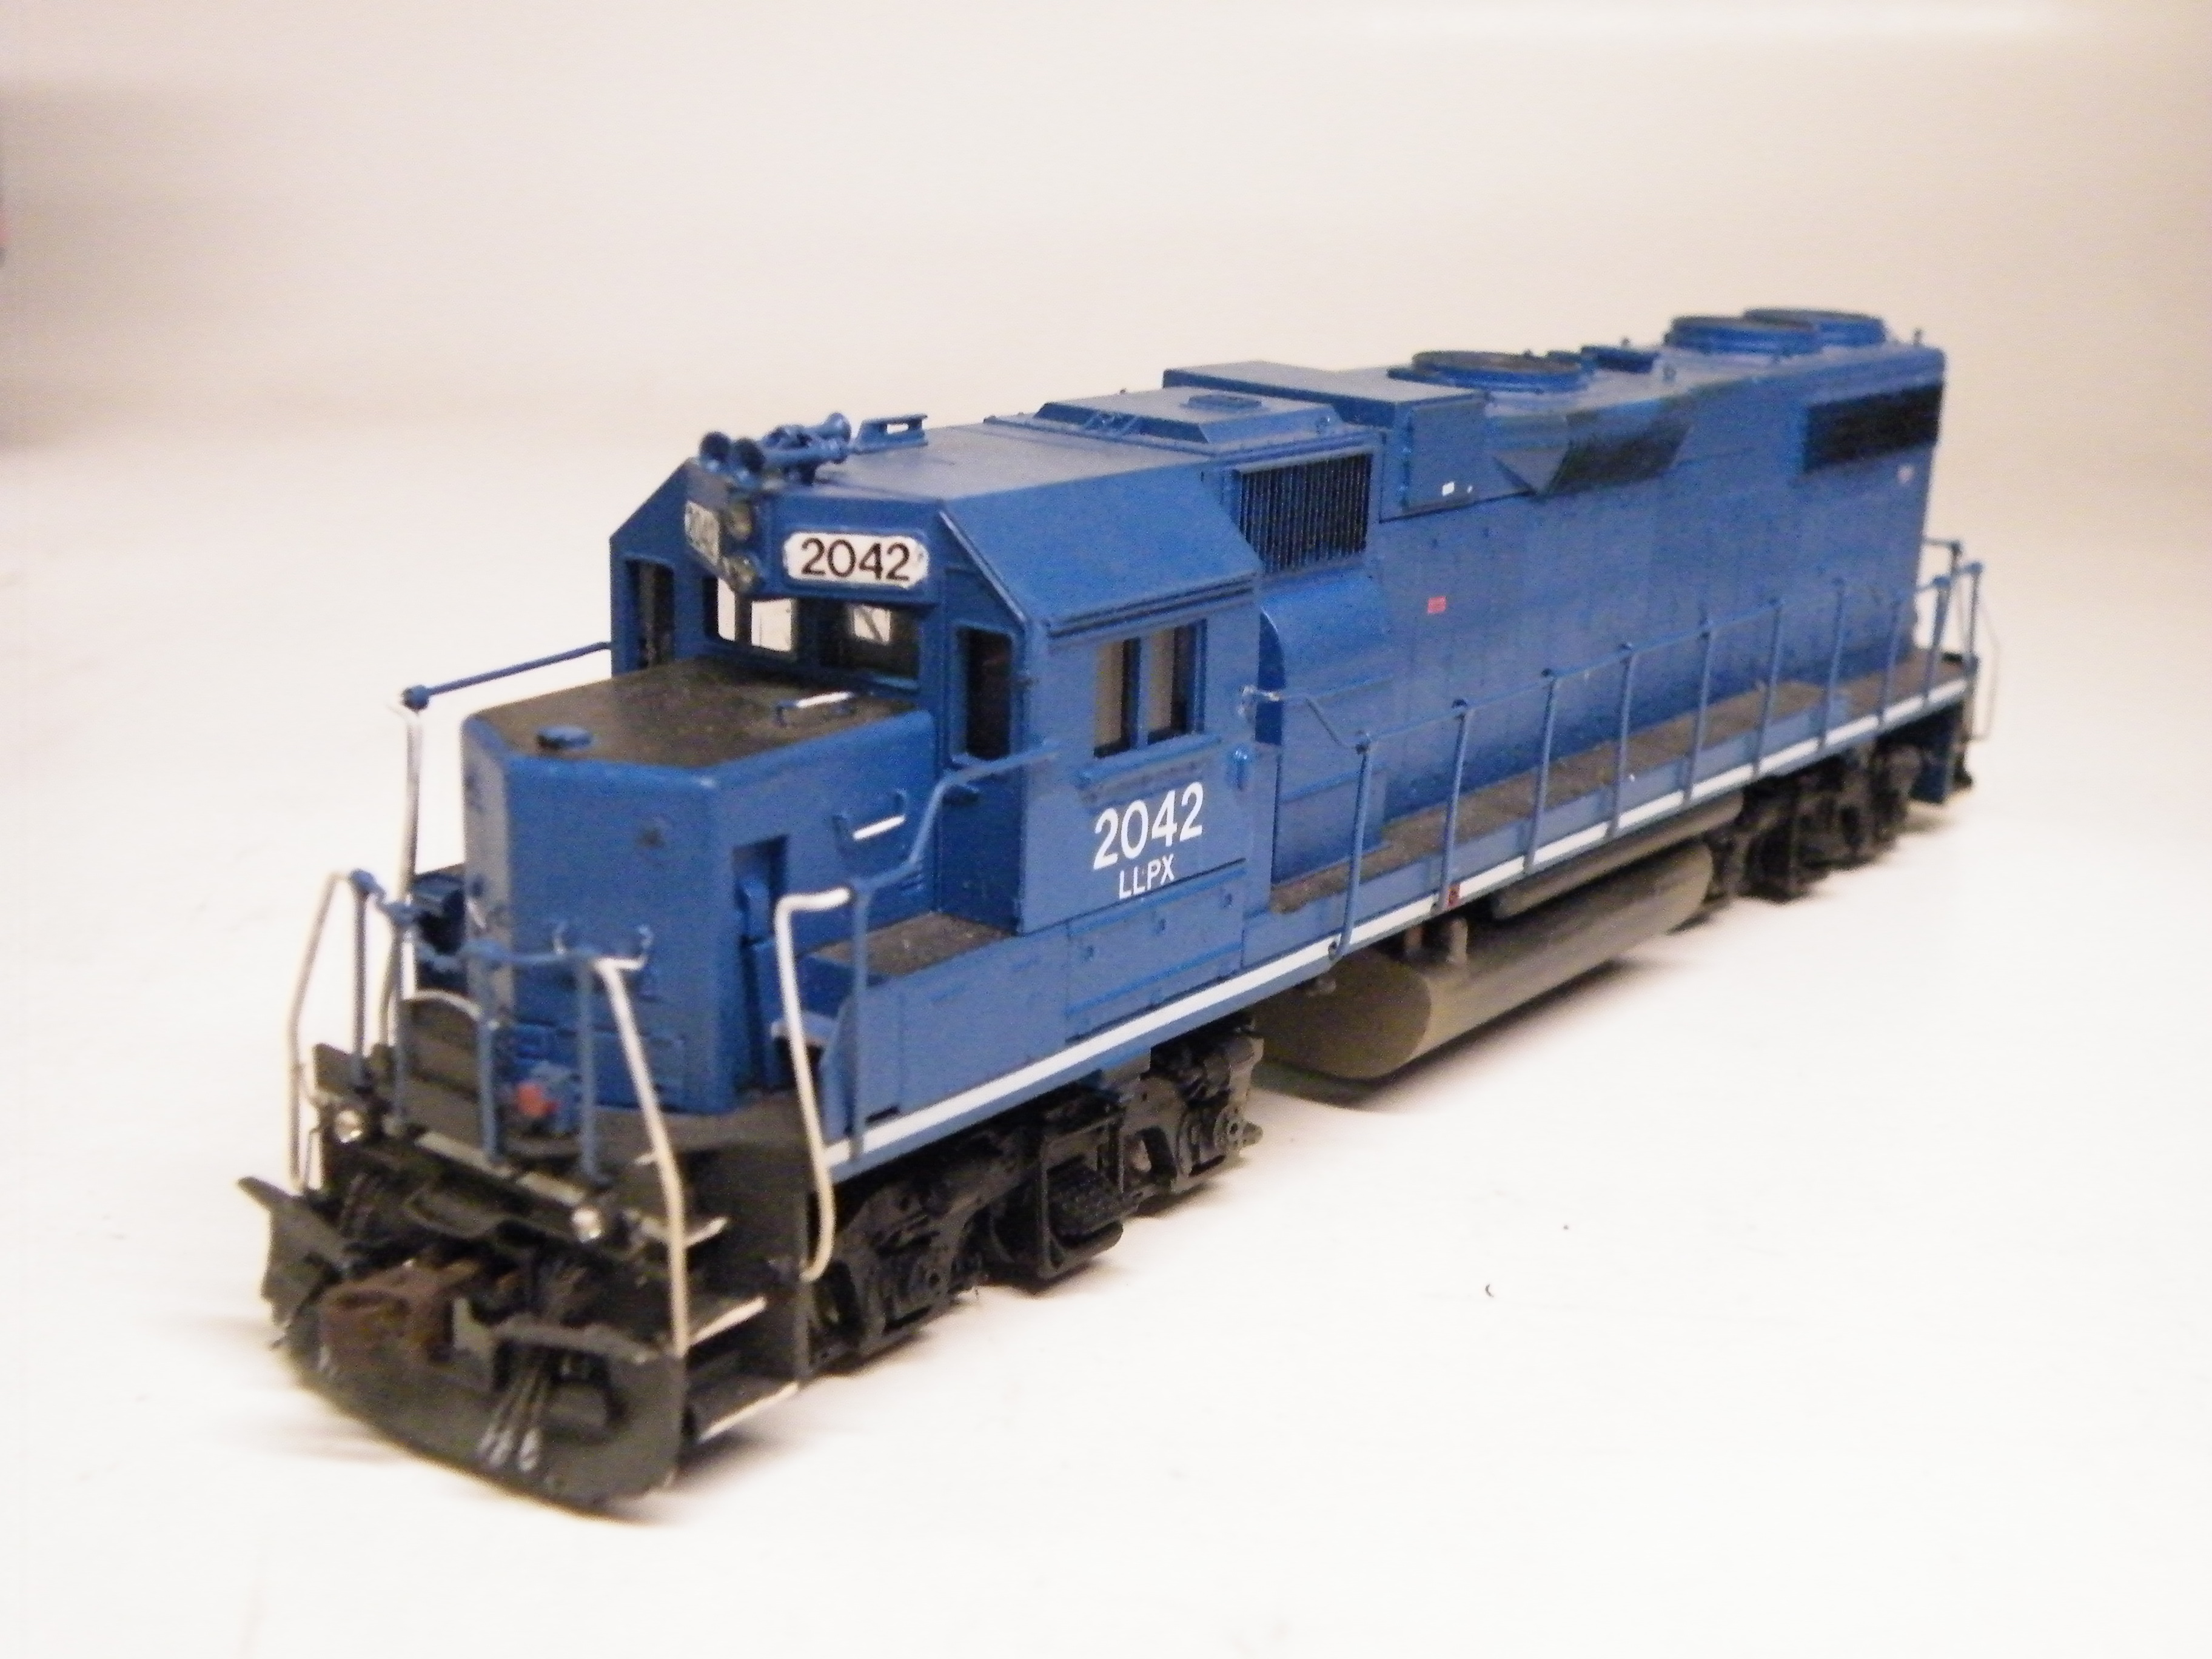 LLPX GP38 2042 was originally a Athearn Blue Box EMDX former Conrail unit that I patched while bored one day. This was my first custom project and was completed back in 2006.  I used the basic list of detail parts, nothing too special.